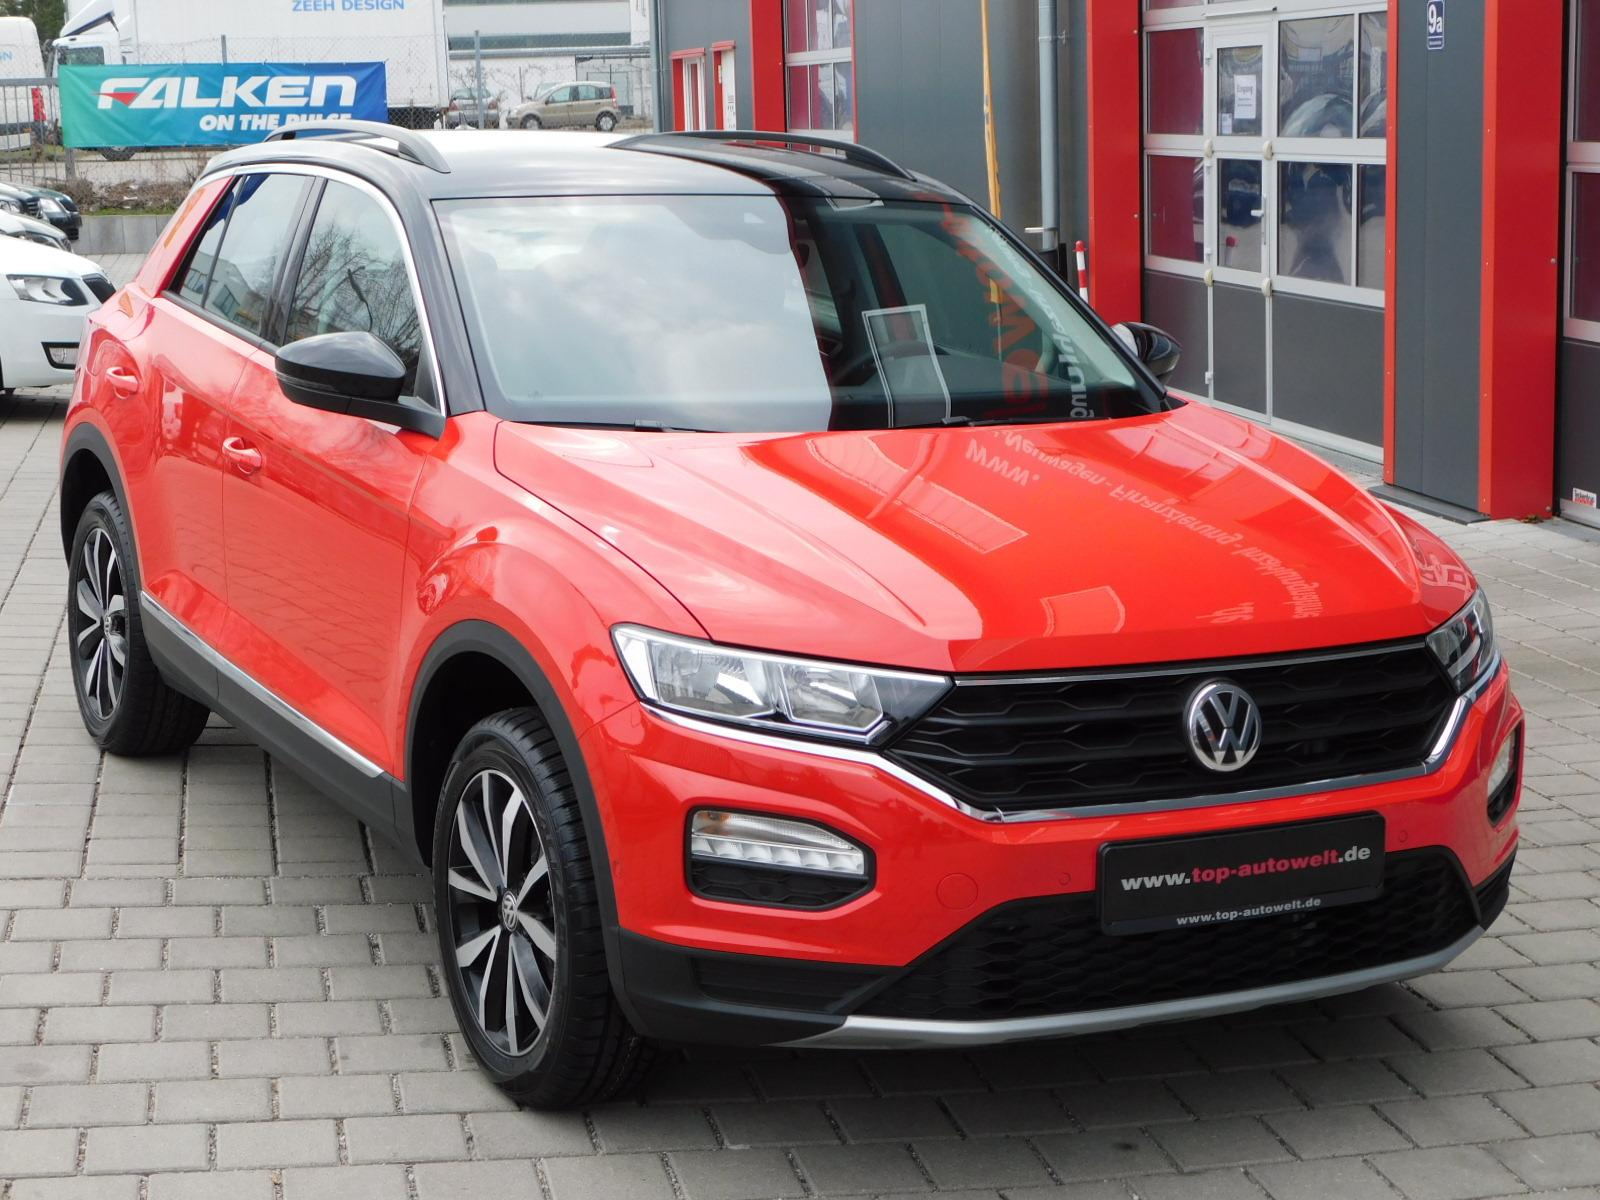 volkswagen t roc basis 1 0 tsi 115 ps klima lane assist. Black Bedroom Furniture Sets. Home Design Ideas